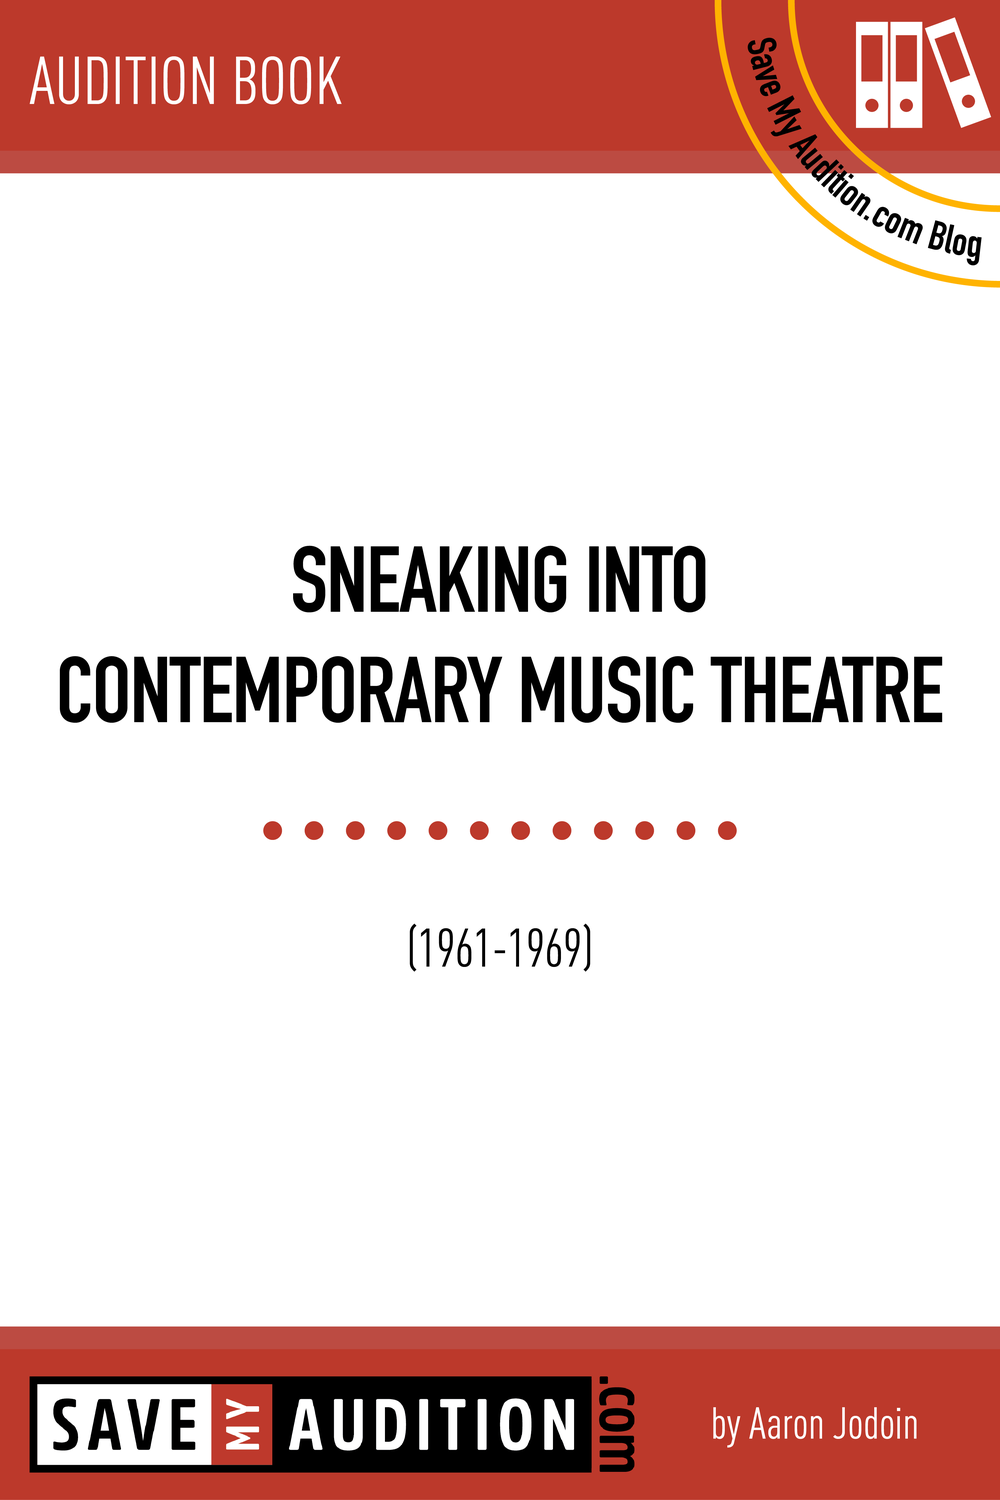 Sneaking into Contemporary Music Theatre-01.png